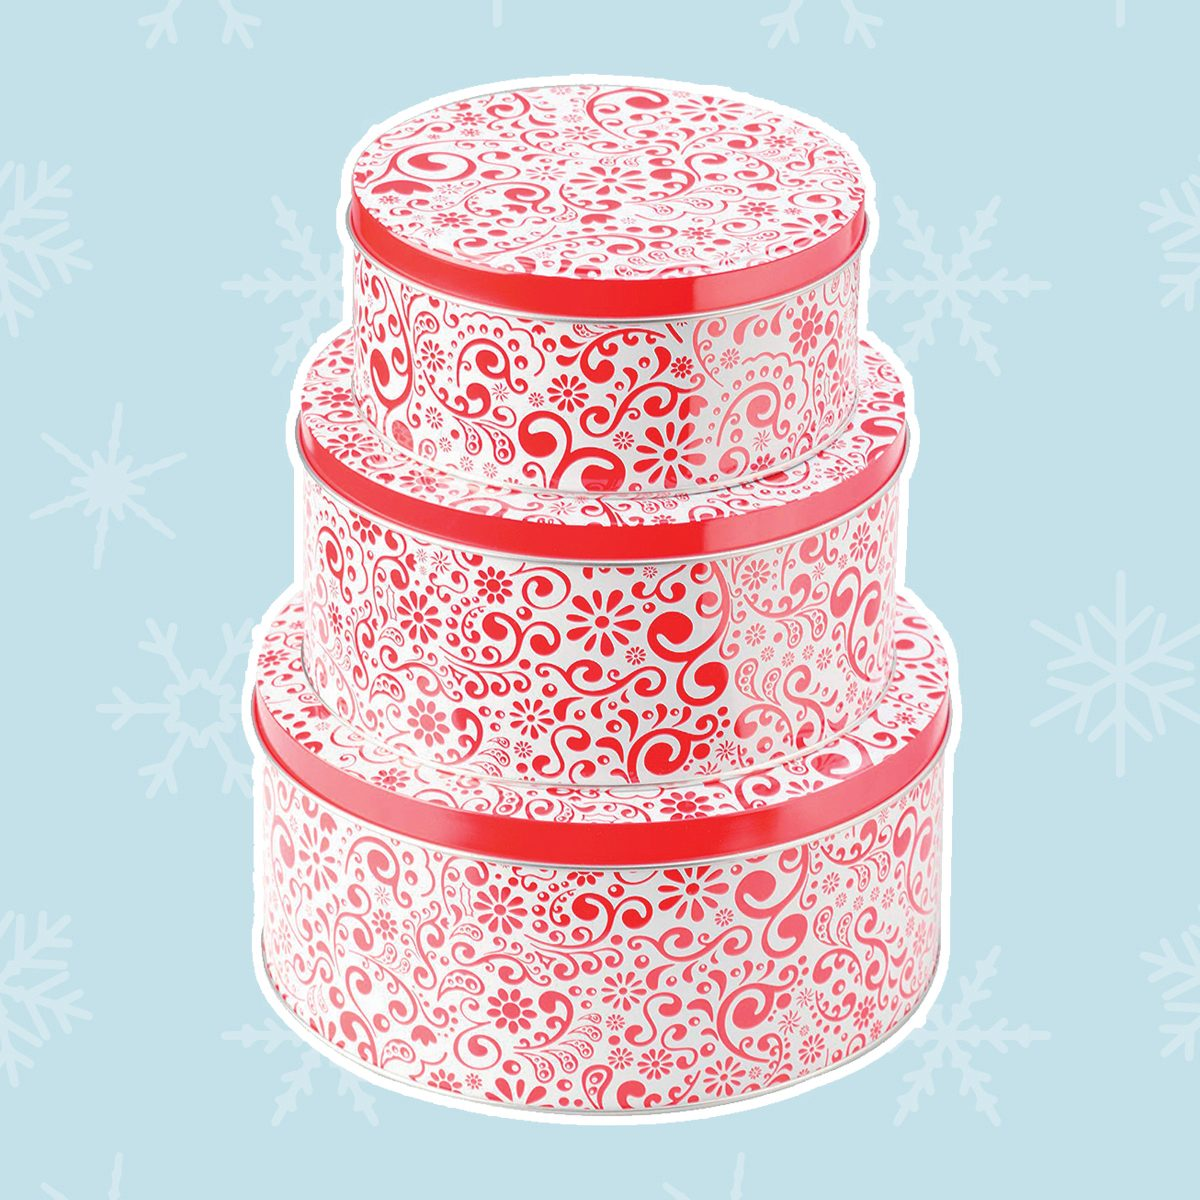 CHRISTMAS HOLIDAY COOKIE TINS Nesting Metal Gift Boxes SELECT Size /& Design